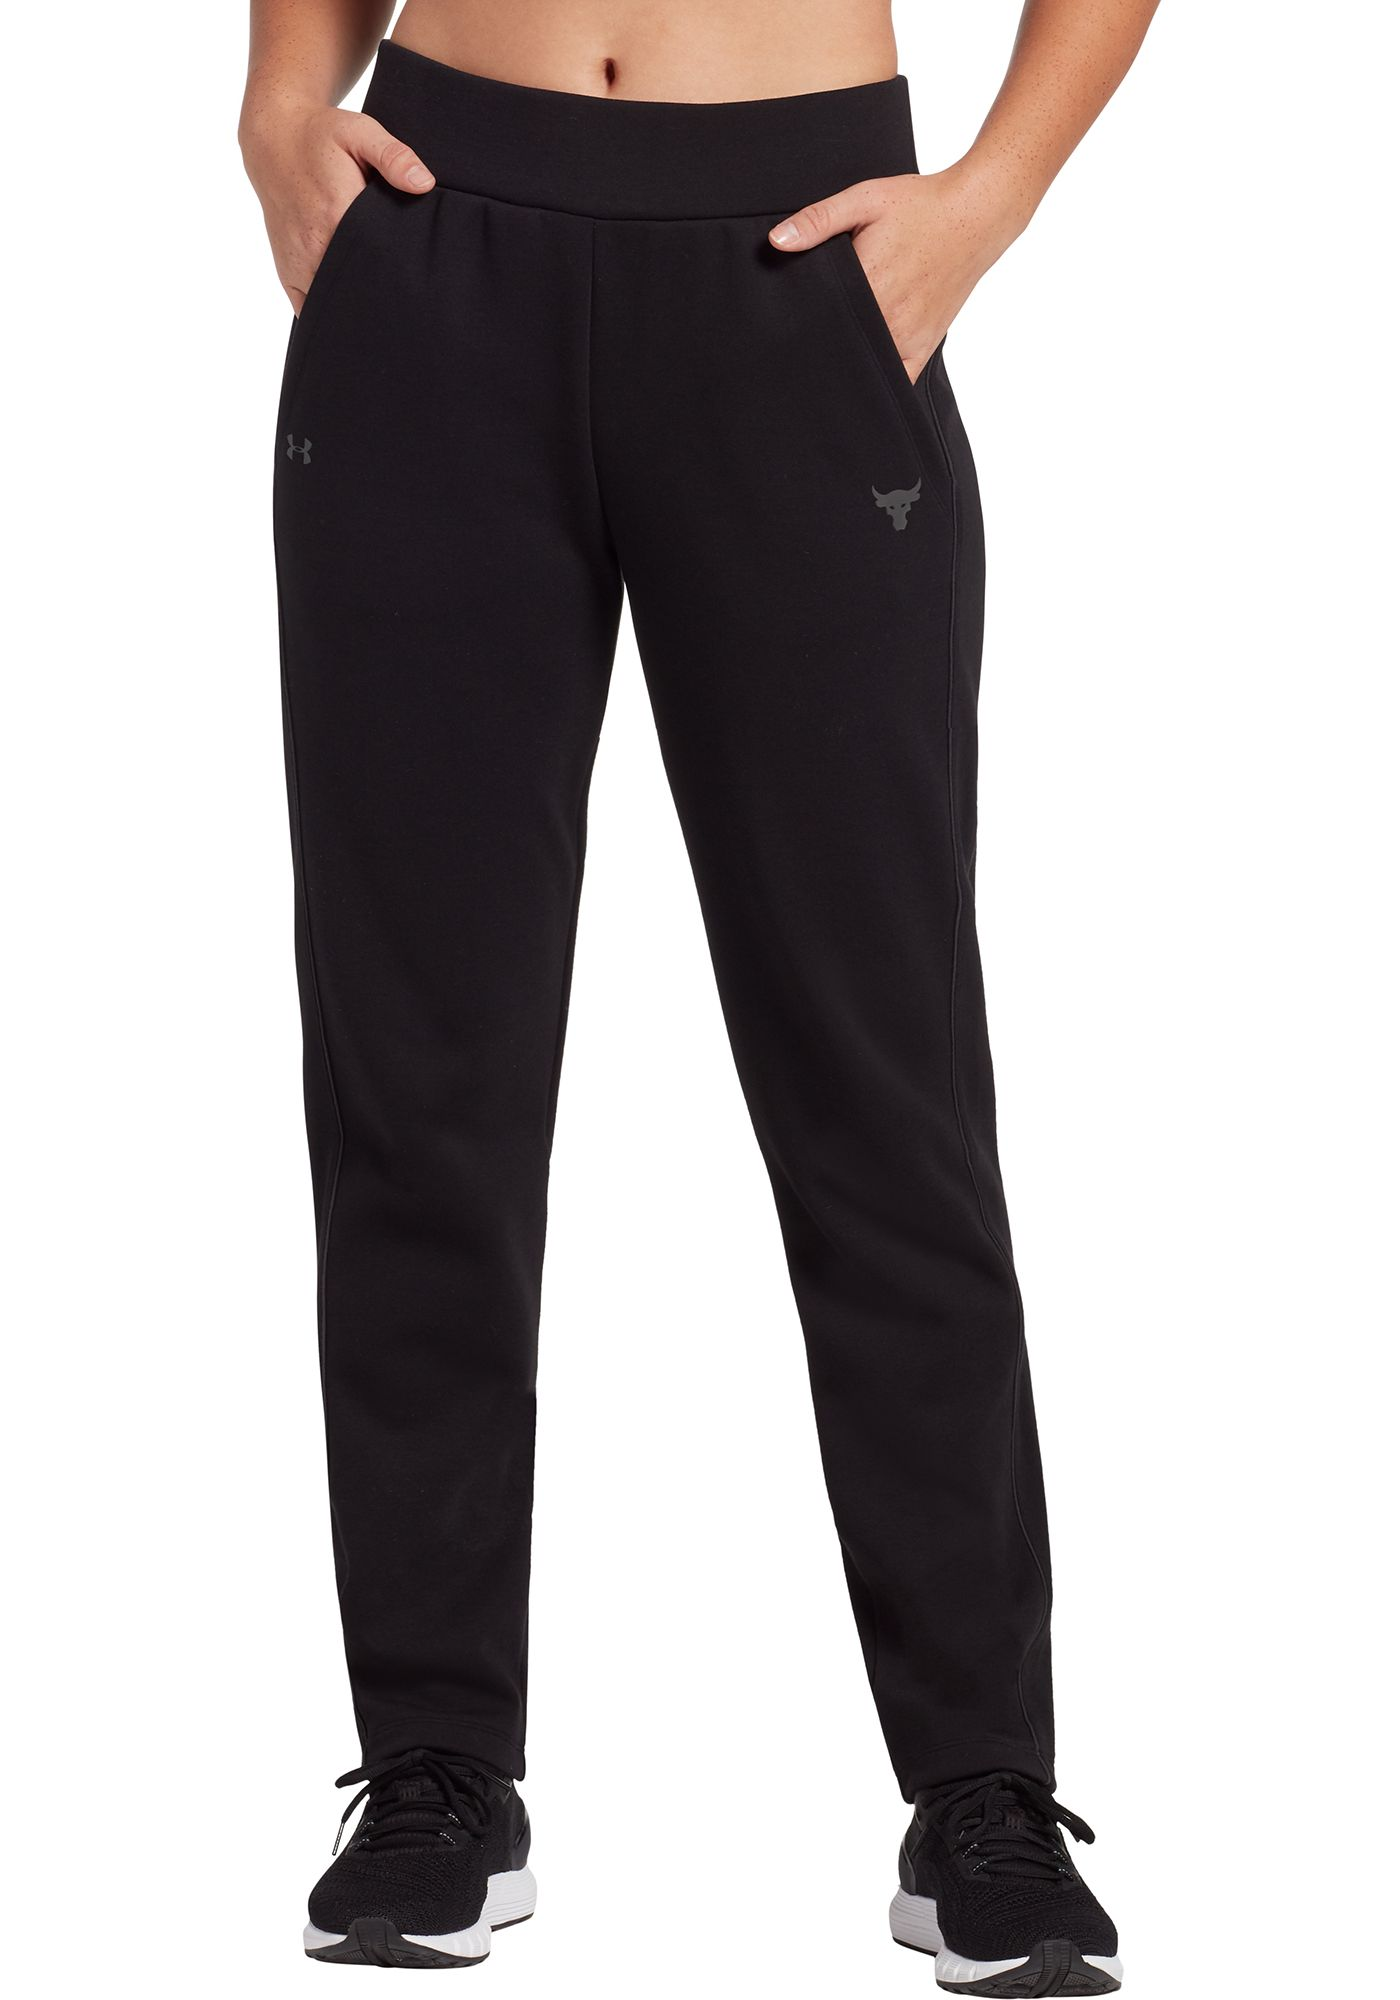 Under Armour Women's Project Rock Double Knit Track Pants